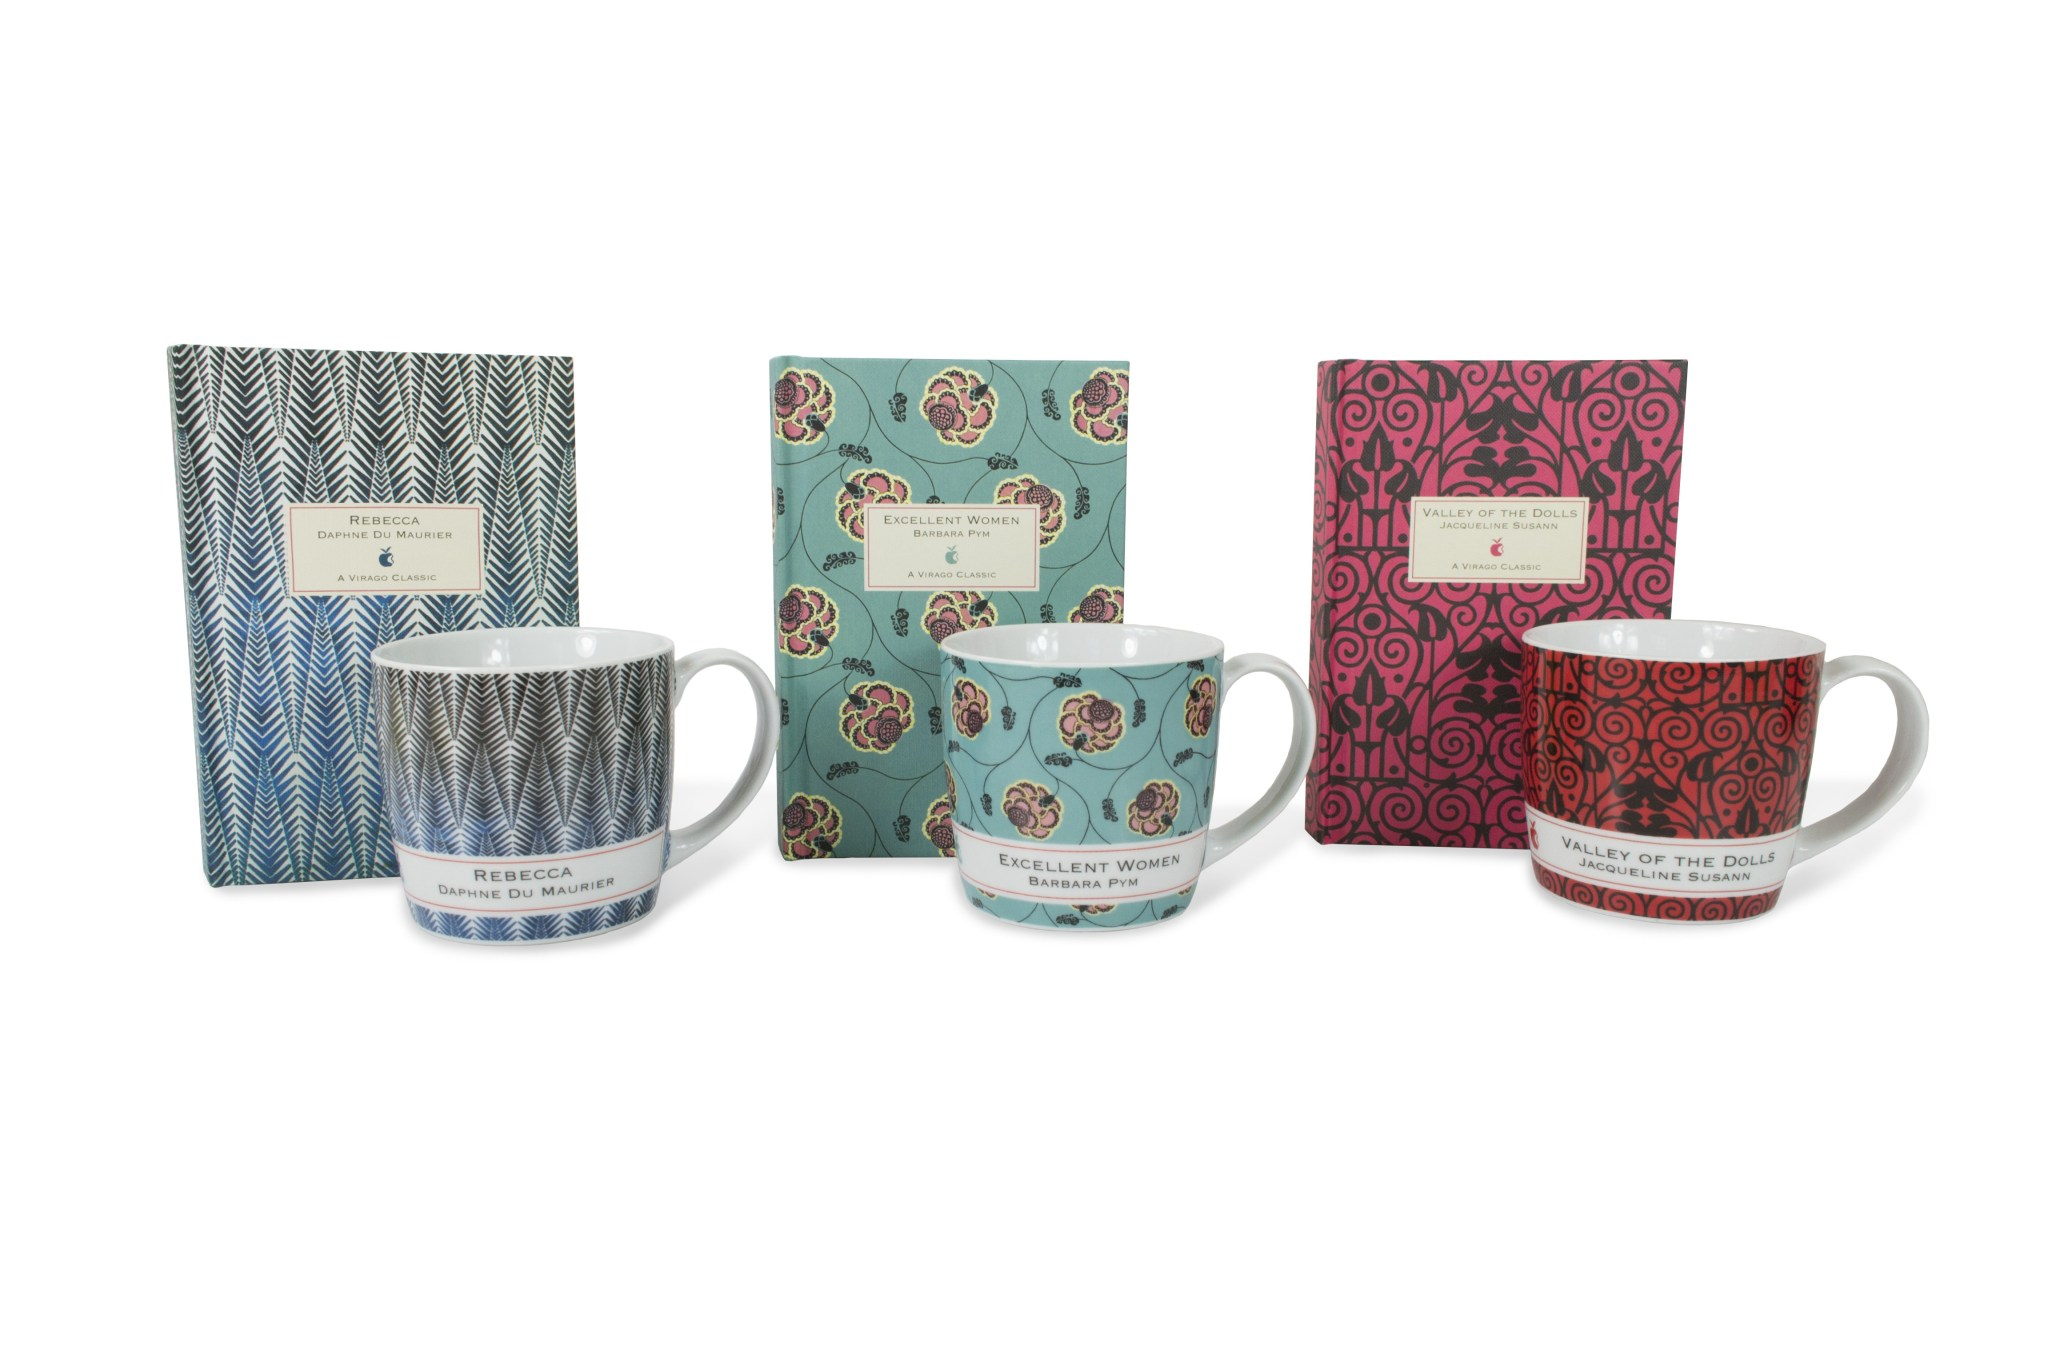 ALL MUGS AND NOTEBOOKS